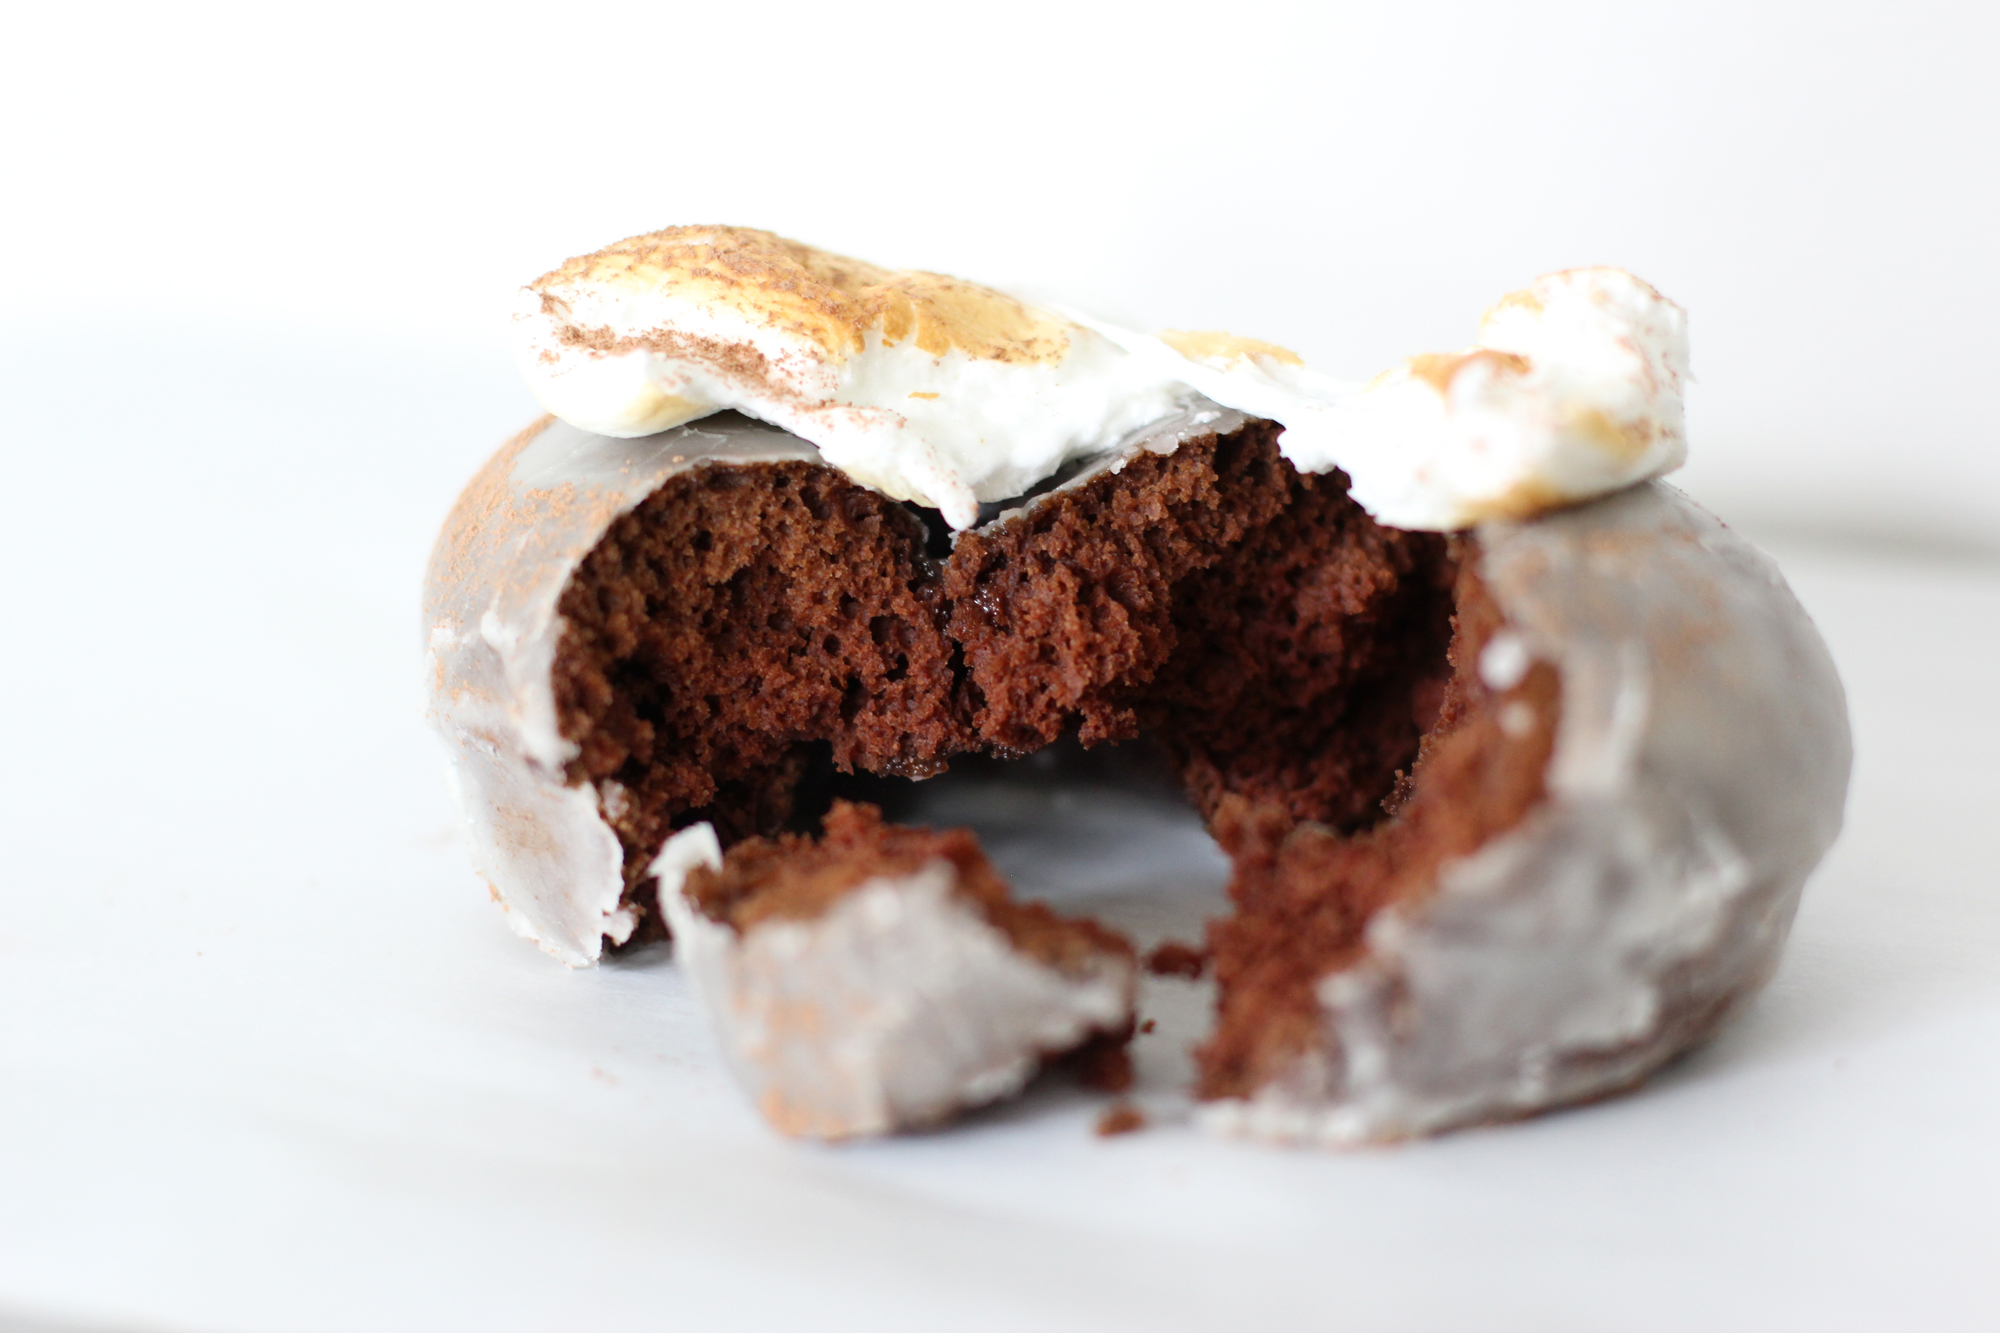 Hot Chocolate Donuts with Toasted Marshmallows (These are incredible! Just sayin'.)